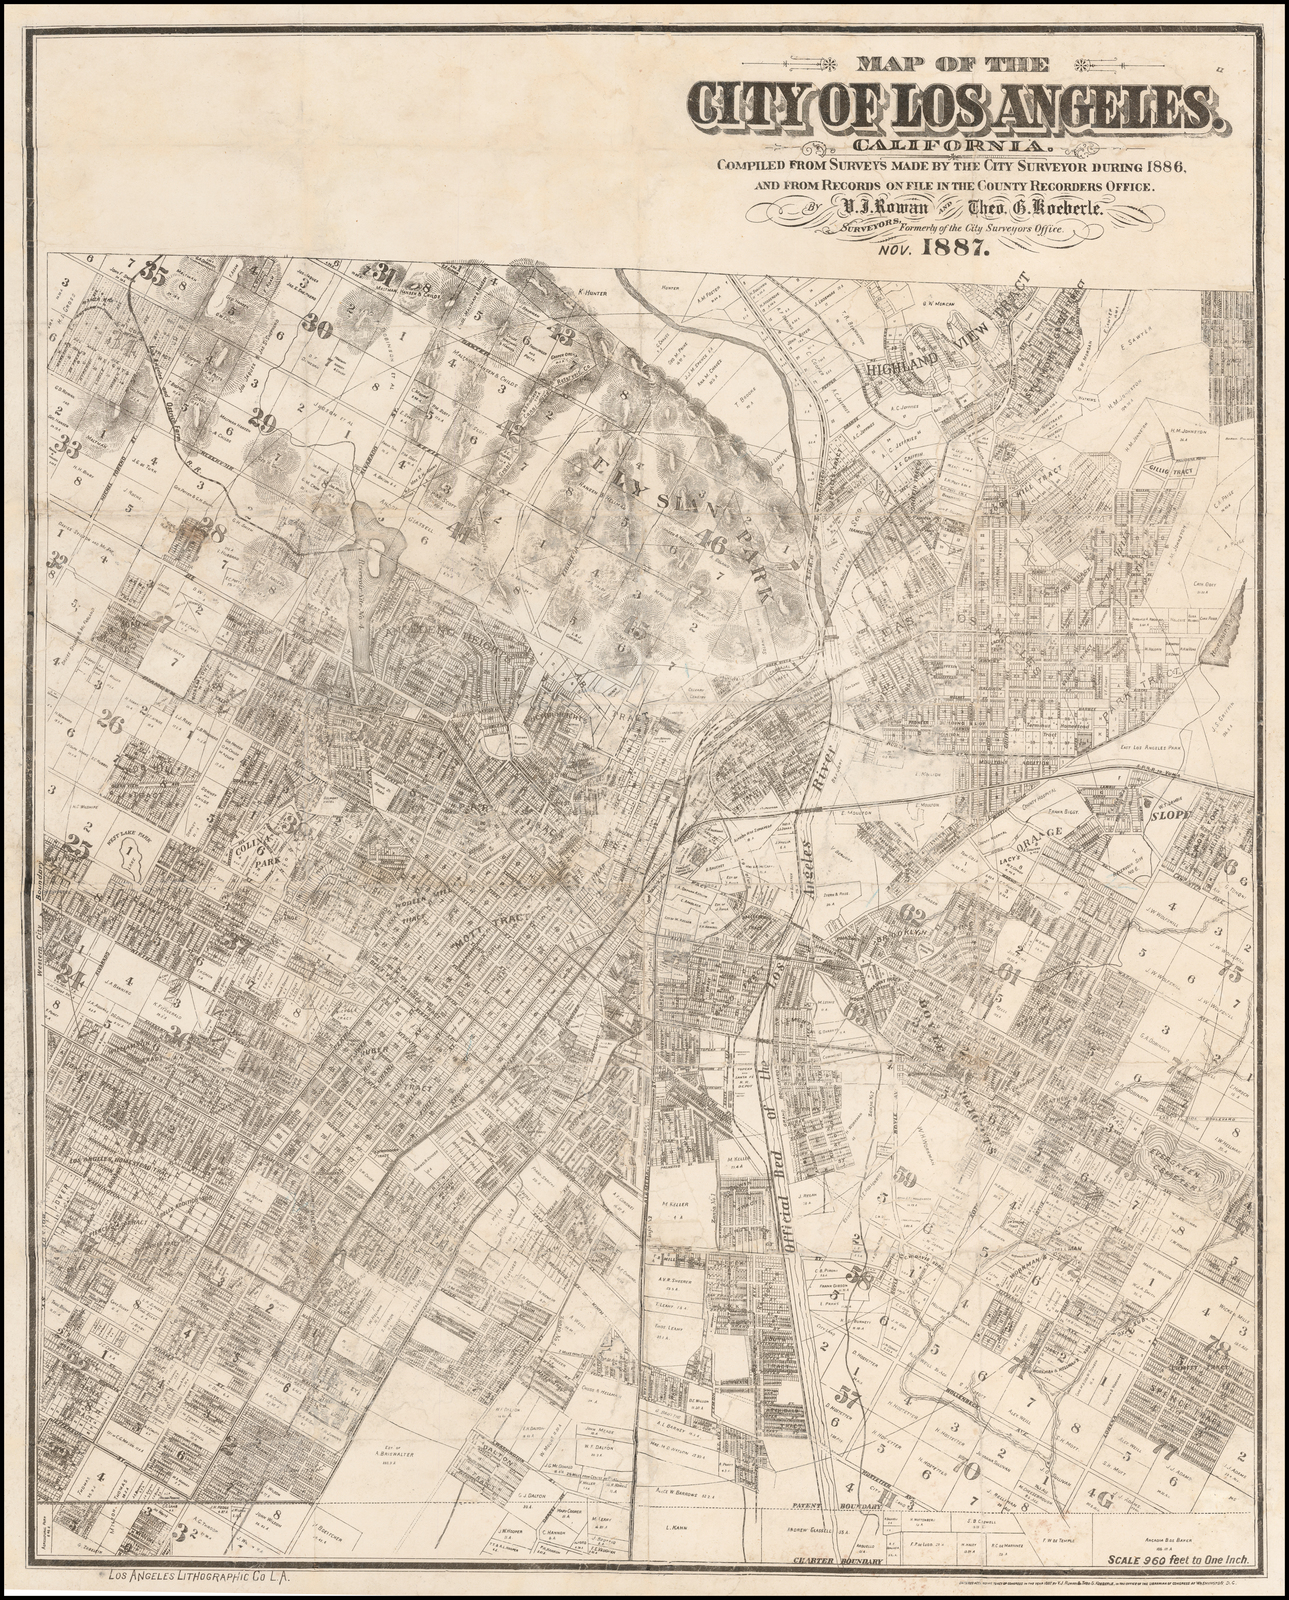 Map of the City of Los Angeles. California. Compiled From ... Map City Of Los Angeles on city of kenner map, city of lone tree map, city of redwood city map, city of norco map, city of san buenaventura map, city of alabama map, city of joshua tree map, city of yuba city map, city of las vegas area map, city of louisiana map, city of youngstown map, city of lexington map, city of wisconsin map, city of alamo heights map, city of arizona state, city of oak park map, city of plant city map, city of oklahoma map, city md map, city of brooklyn map,